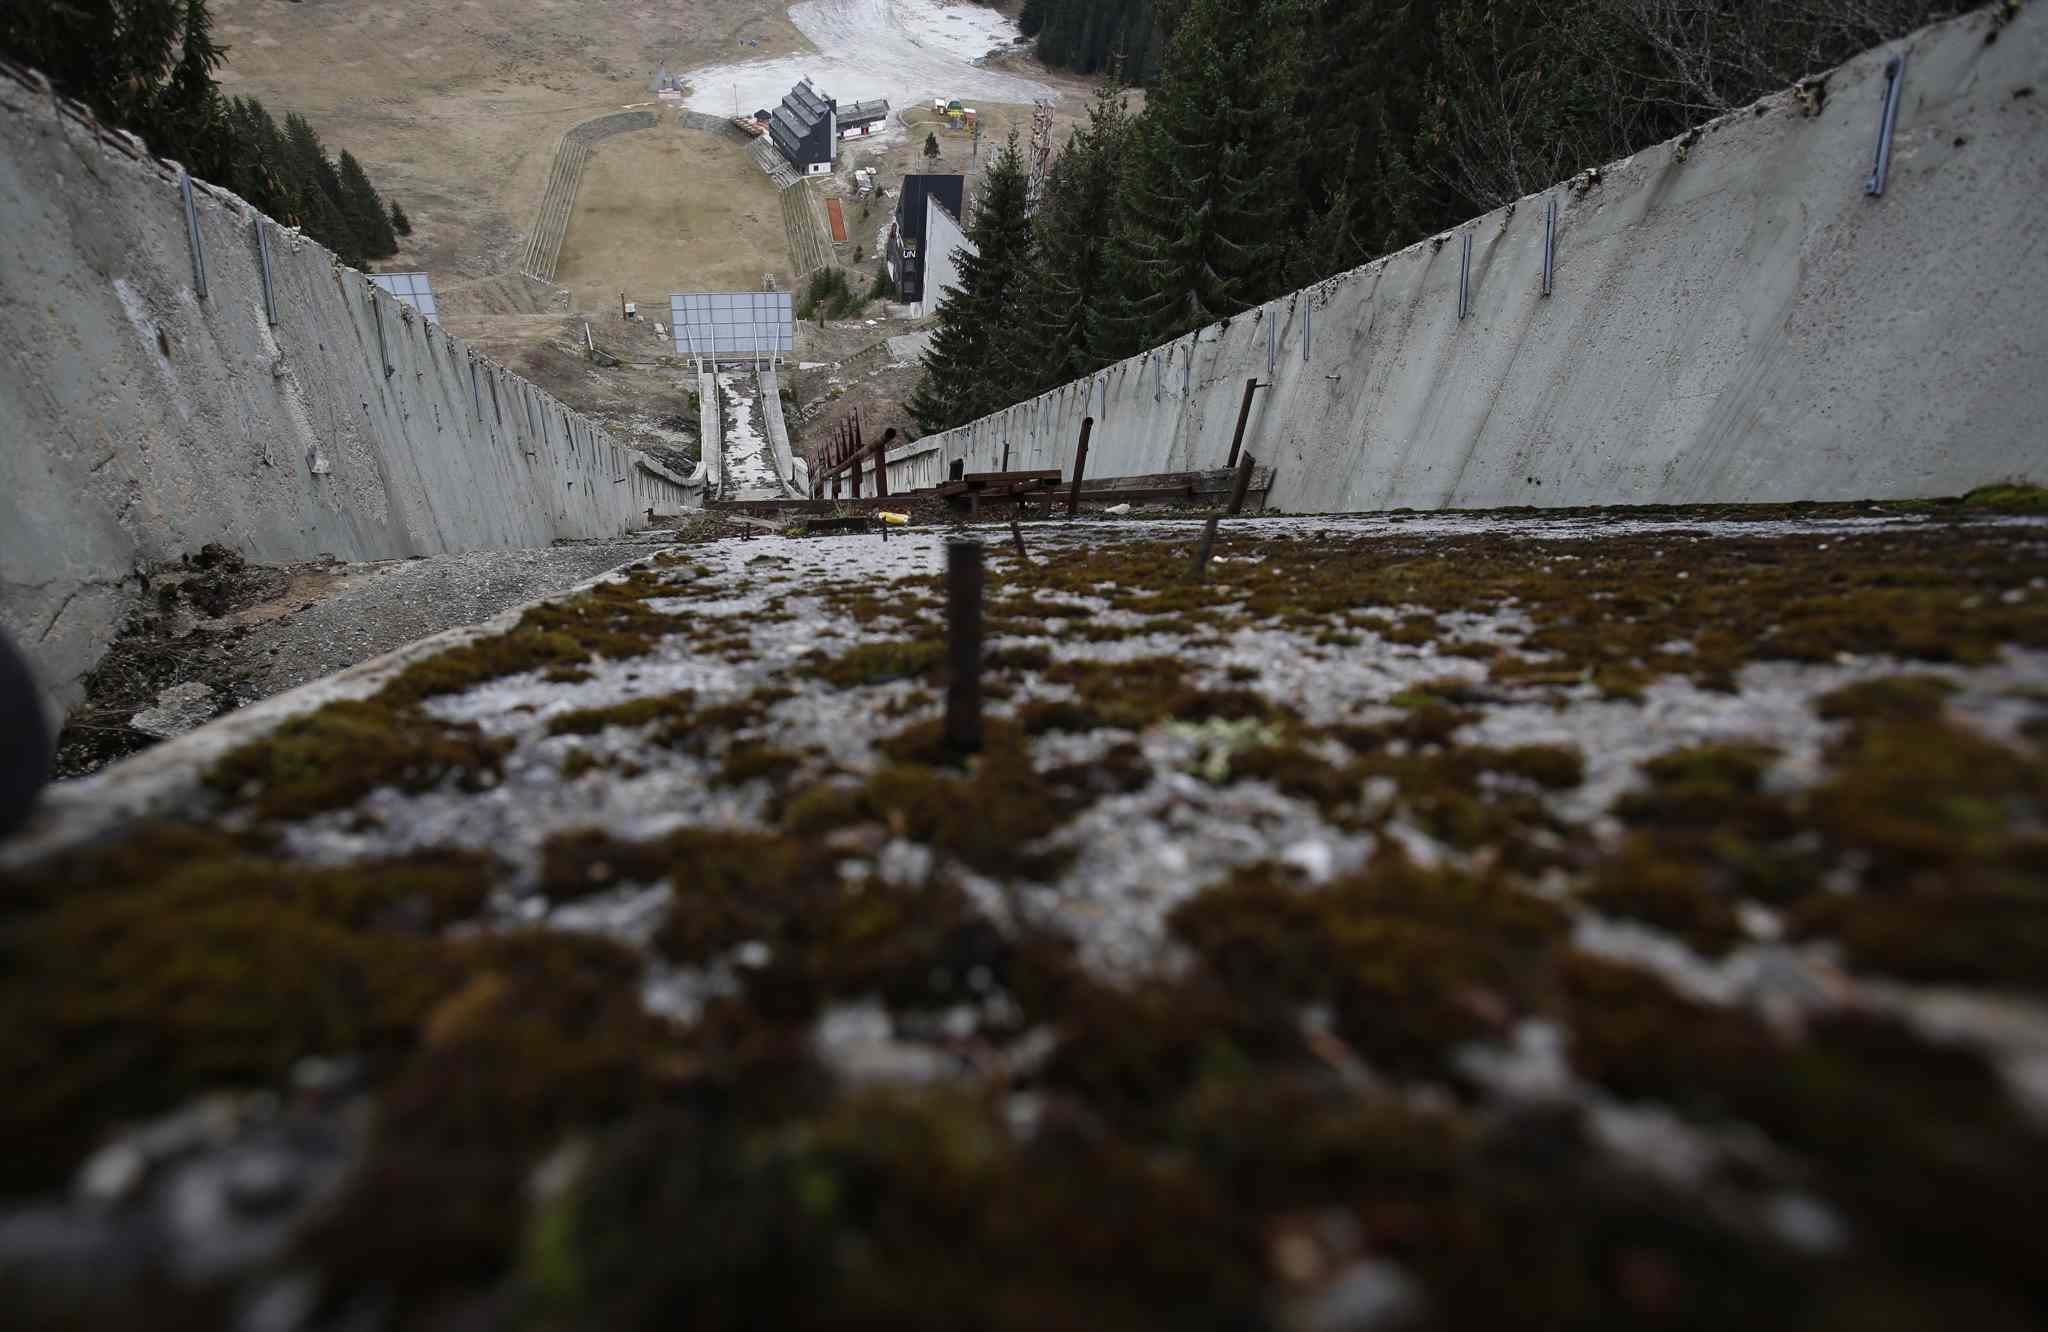 The abandoned ski jumping facility is seen covered in moss at Mt. Igman near Bosnian capital of Sarajevo.  Just eight years after the 1884 Olympics, the bobsleigh and luge track on Mount Trbevic was turned into an artillery position from which Bosnian Serbs pounded the city for almost four years. Today, the abandoned concrete construction looks like a skeleton littered with graffiti.